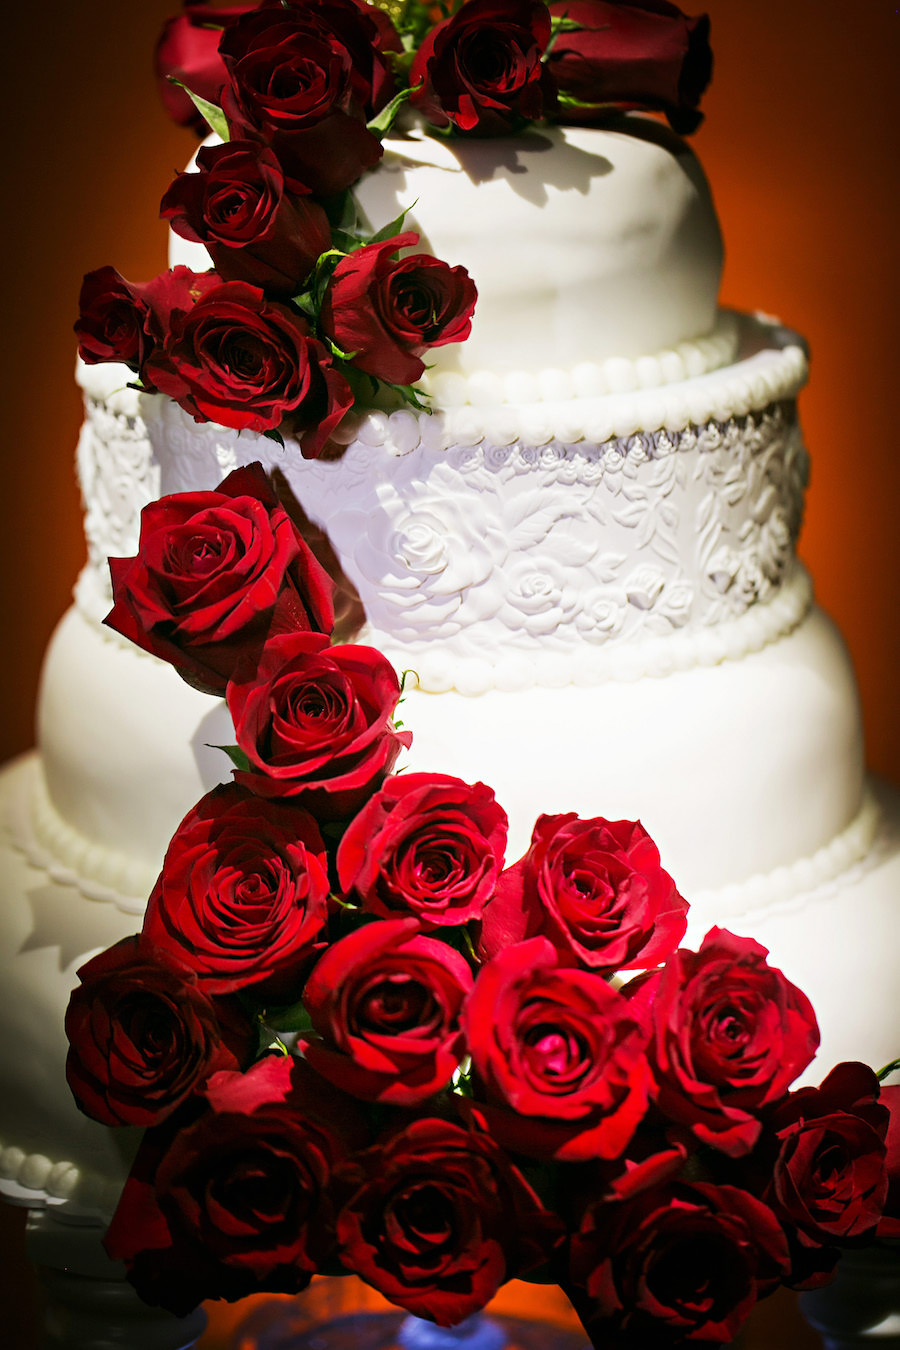 Four tiered, Round, White Wedding Cake With Red Cascading Roses